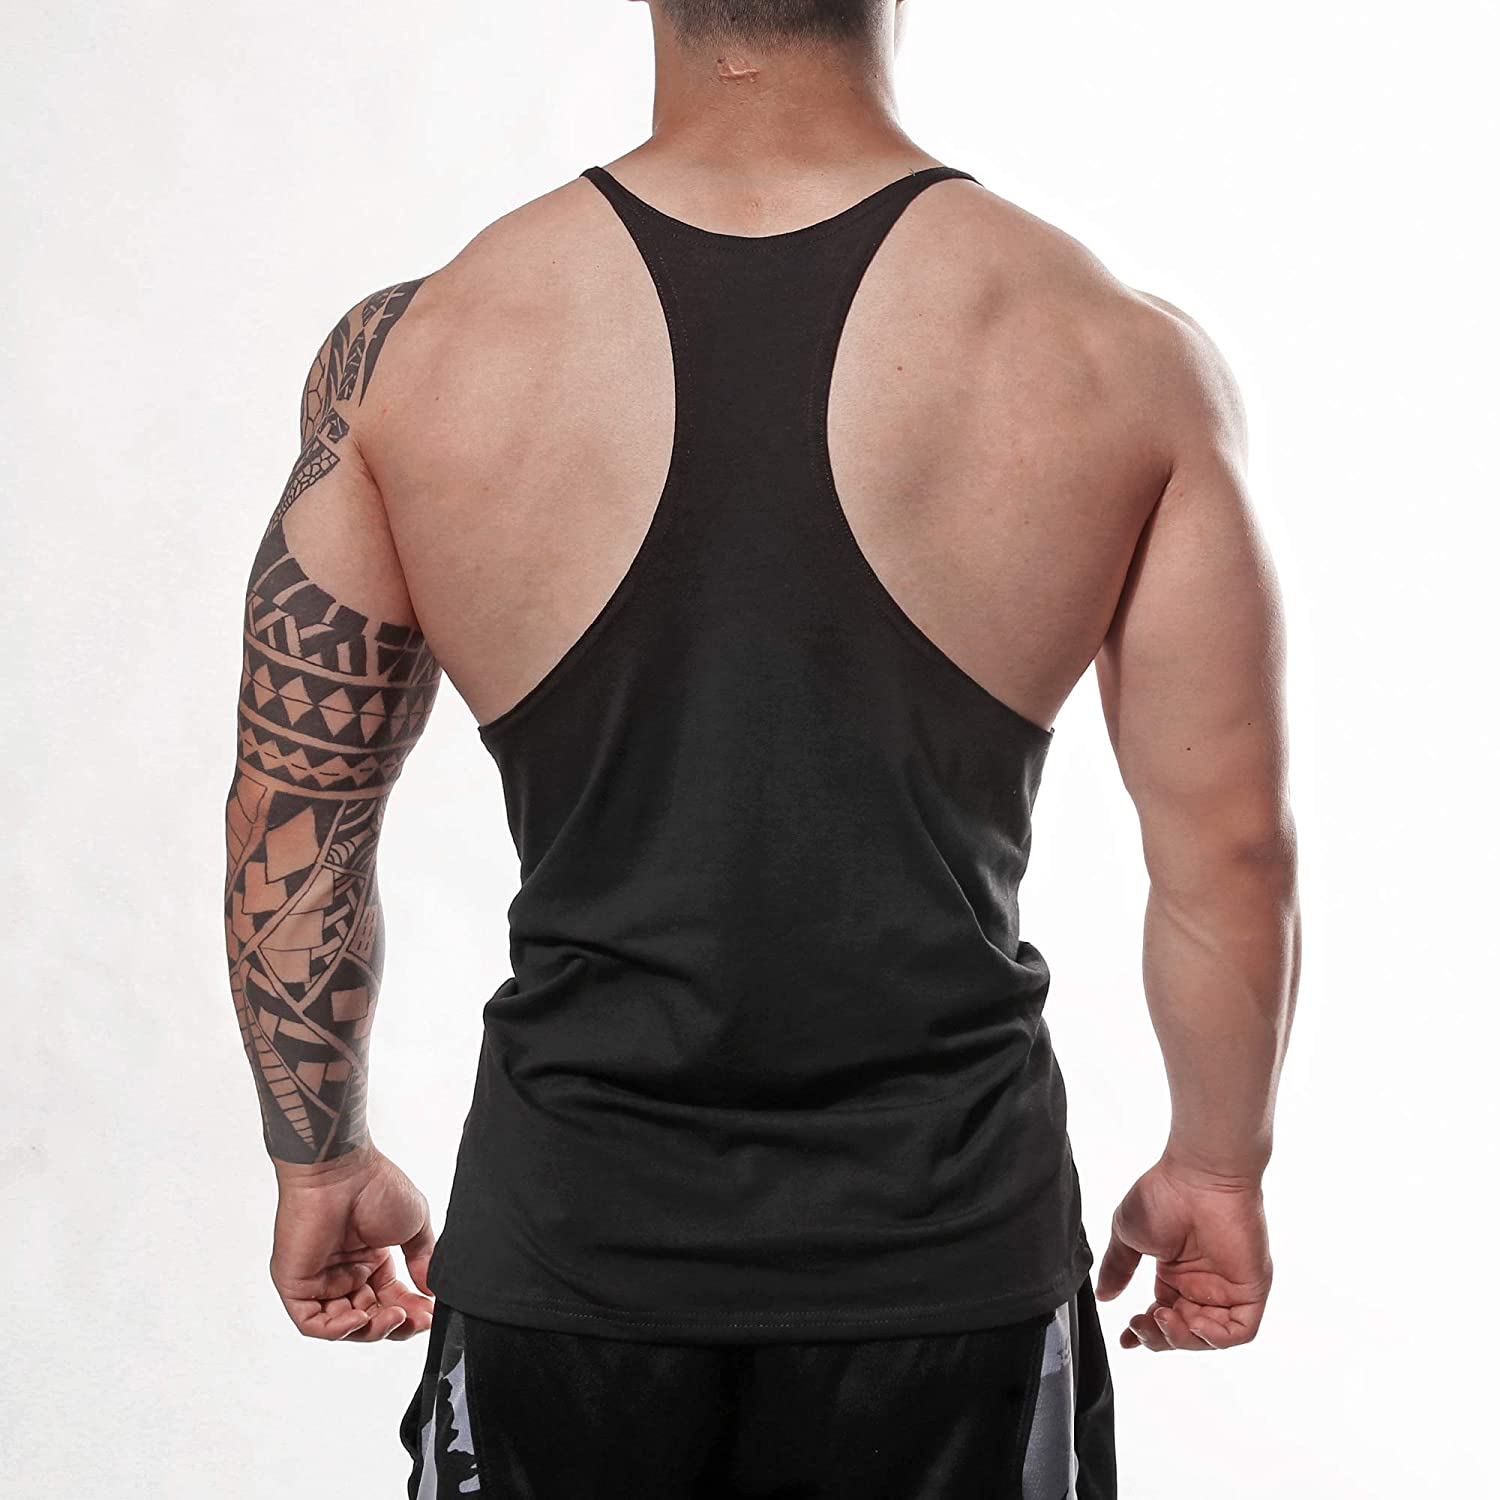 9c67ddc359442 Amazon.com  Manstore Men s Gym Stringer Tank Top Bodybuilding Athletic  Workout Muscle Fitness Vest  Clothing